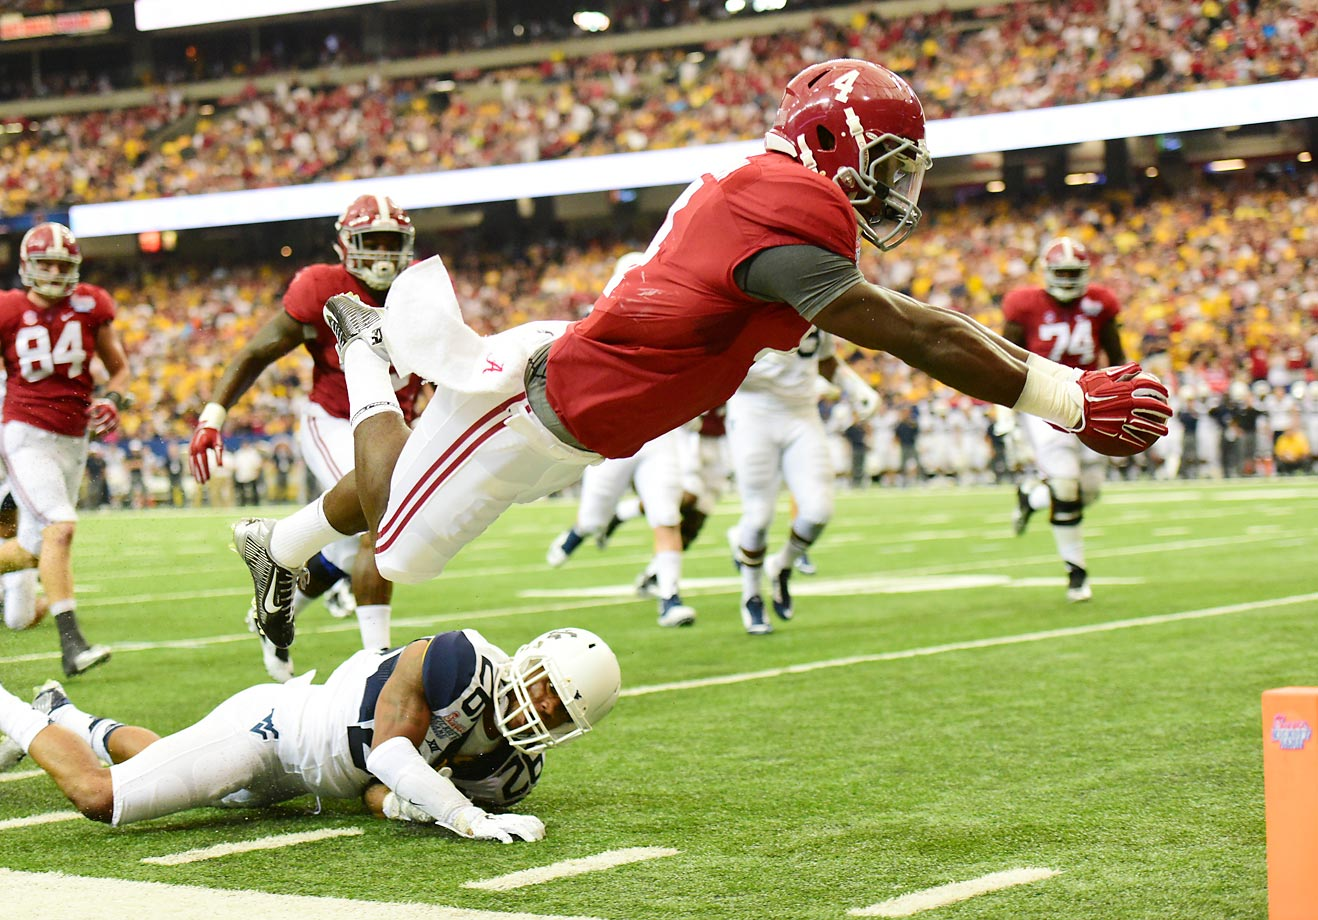 T.J. Yeldon of the Alabama Crimson Tide dives for a touchdown against Travis Bell of the West Virginia Mountaineers at the Georgia Dome on Aug. 30.